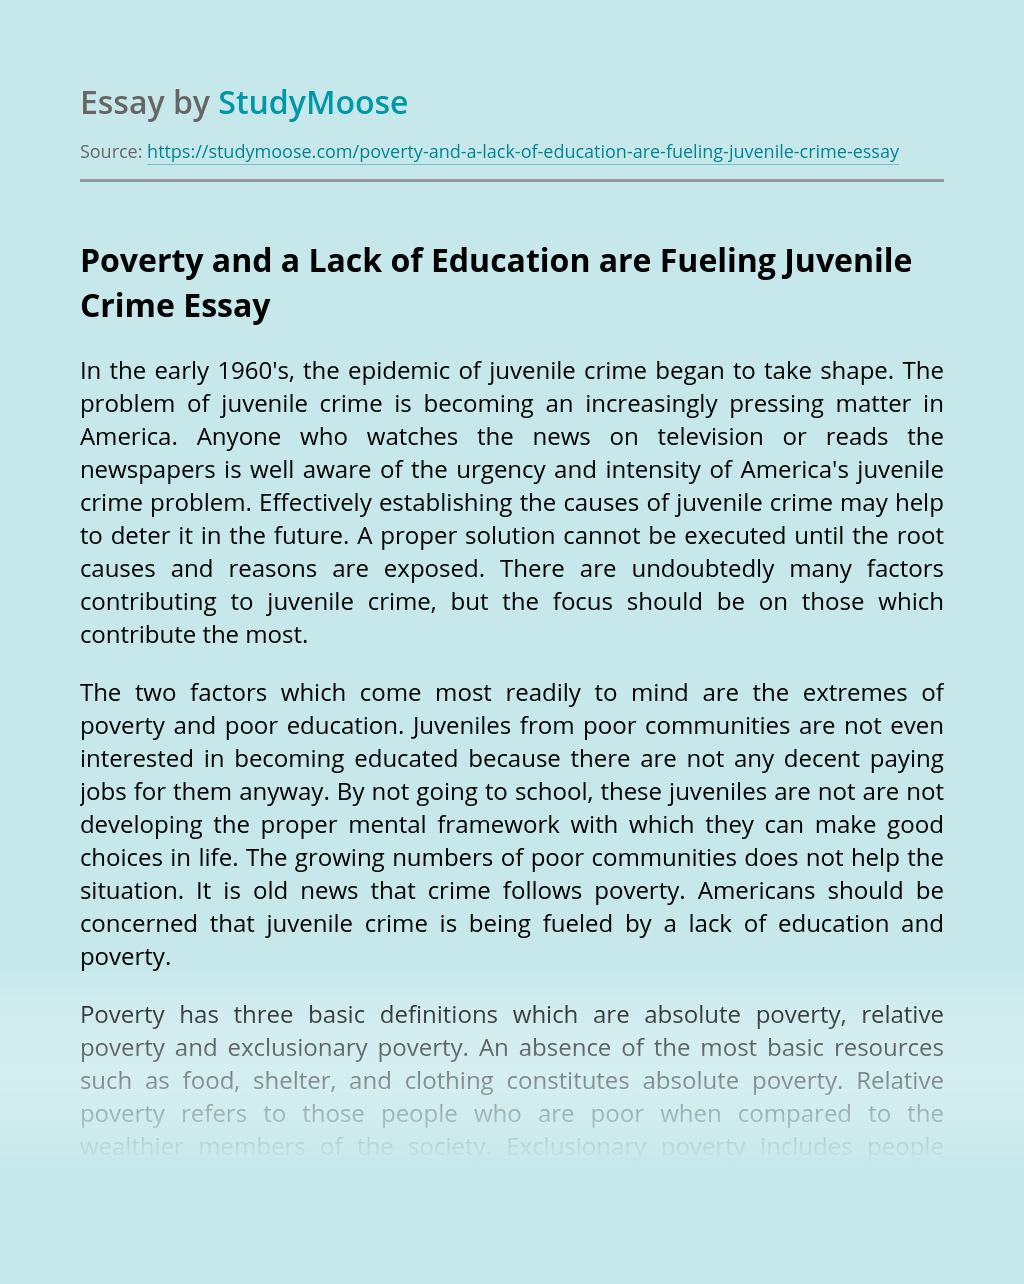 Poverty and a Lack of Education are Fueling Juvenile Crime